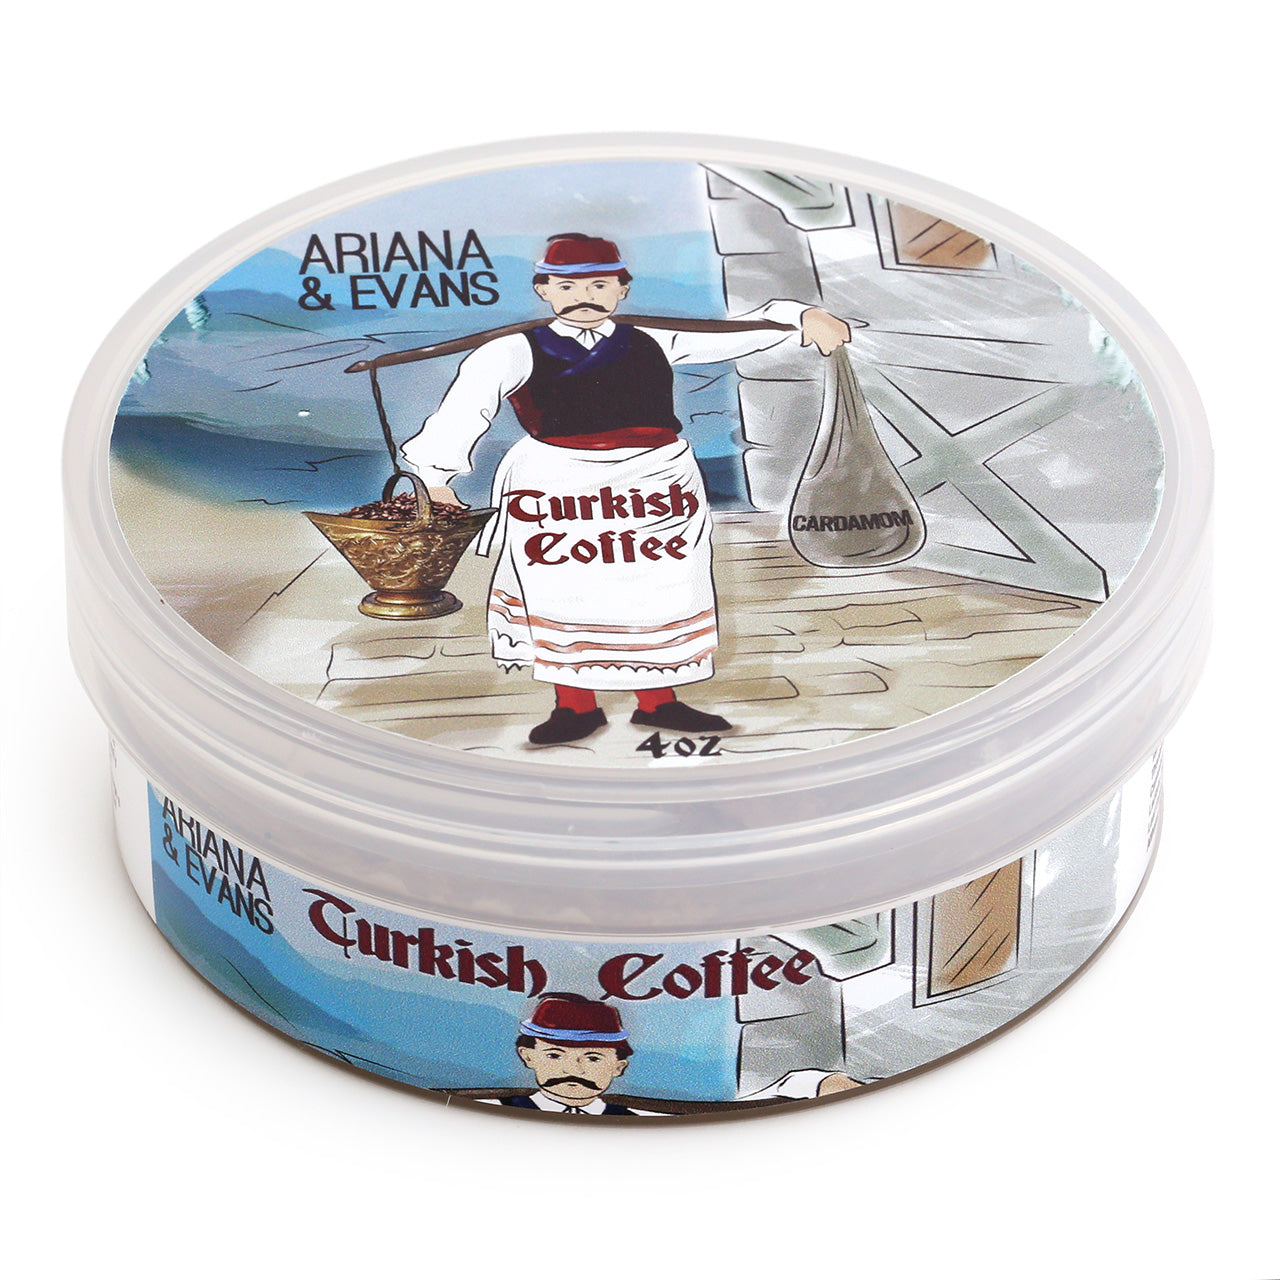 Ariana & Evans Shave Soap Turkish Coffee - 118ml Tub, top view